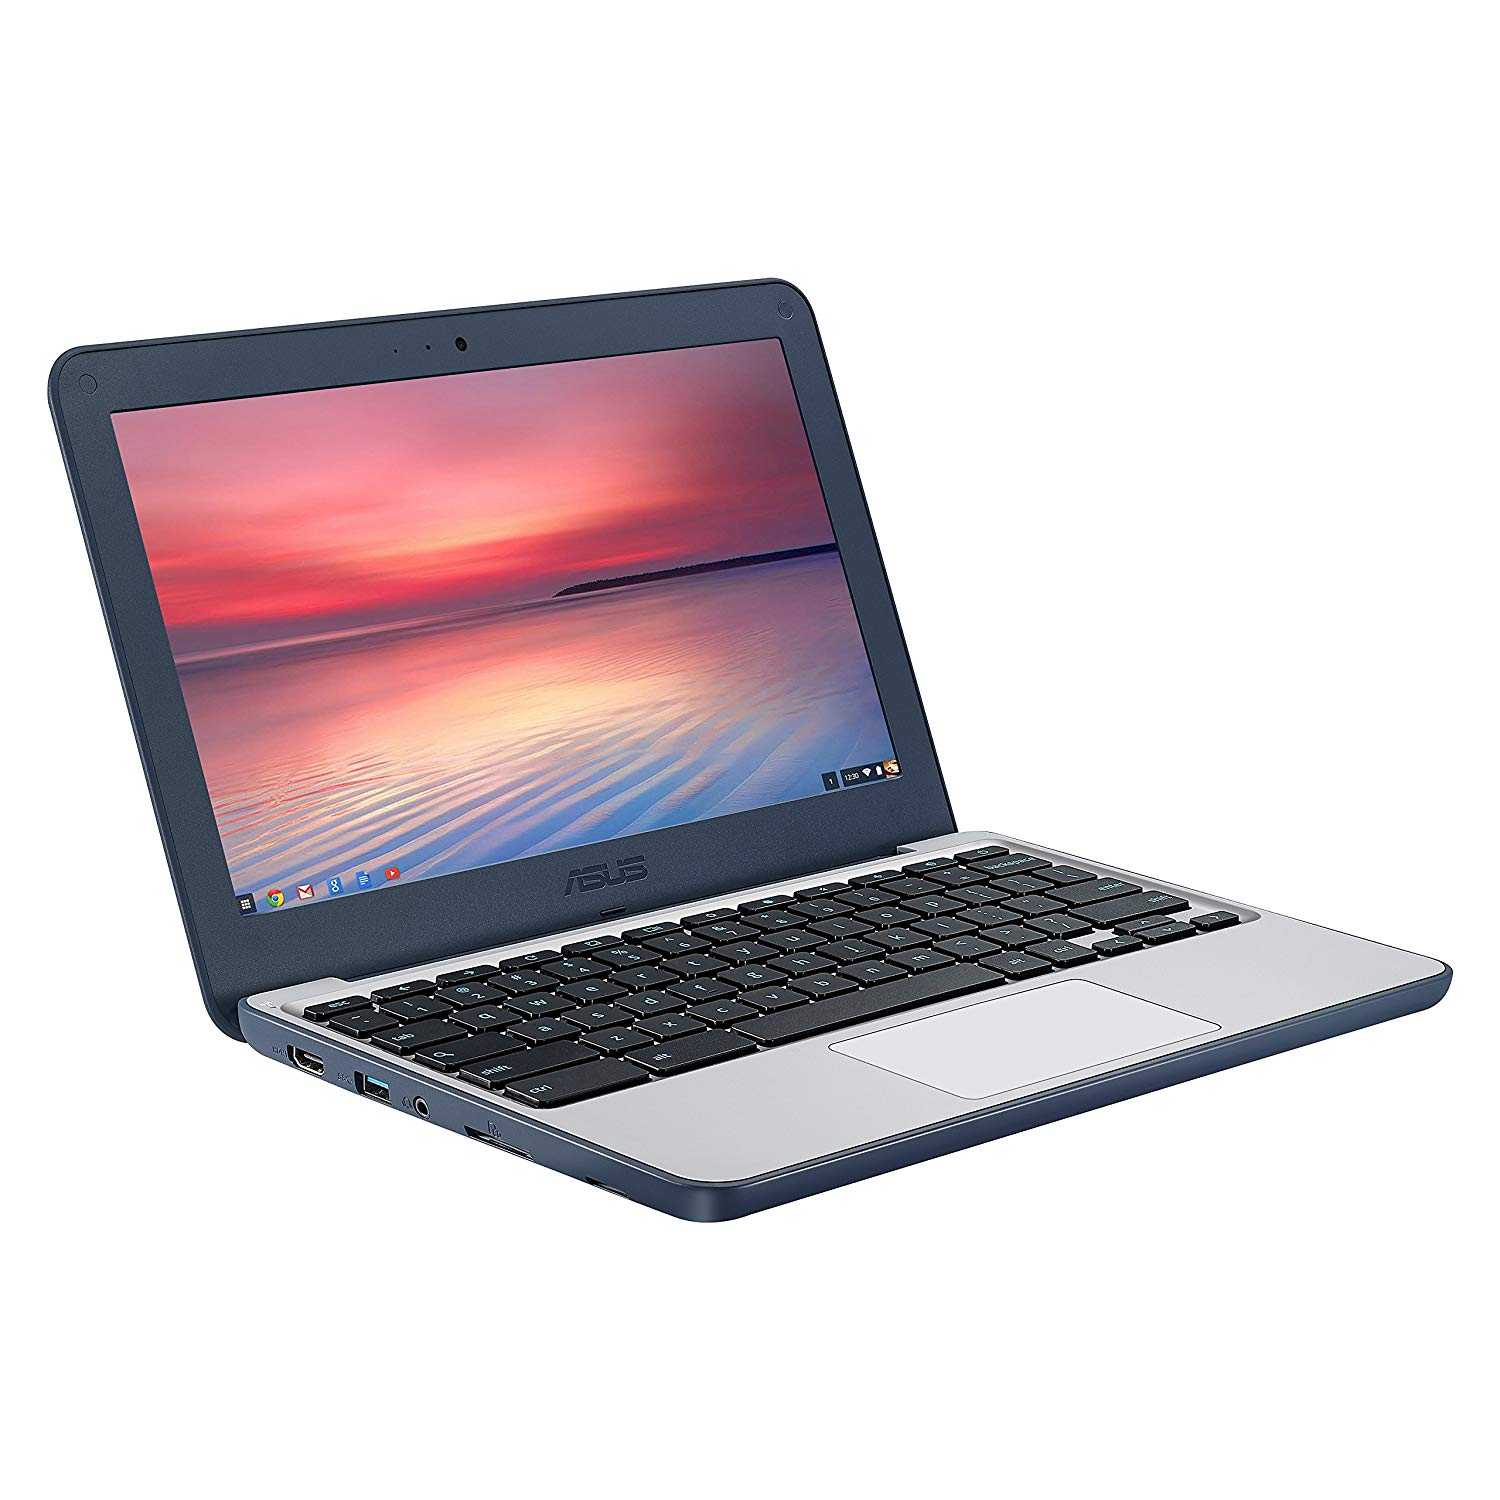 "ASUS Chromebook C202SA-YS04 11.6"" Ruggedized and Water Resistant Design with 180 Degree Hinge (Intel Celeron 4GB RAM, 32GB eMMC, Dark Blue)"